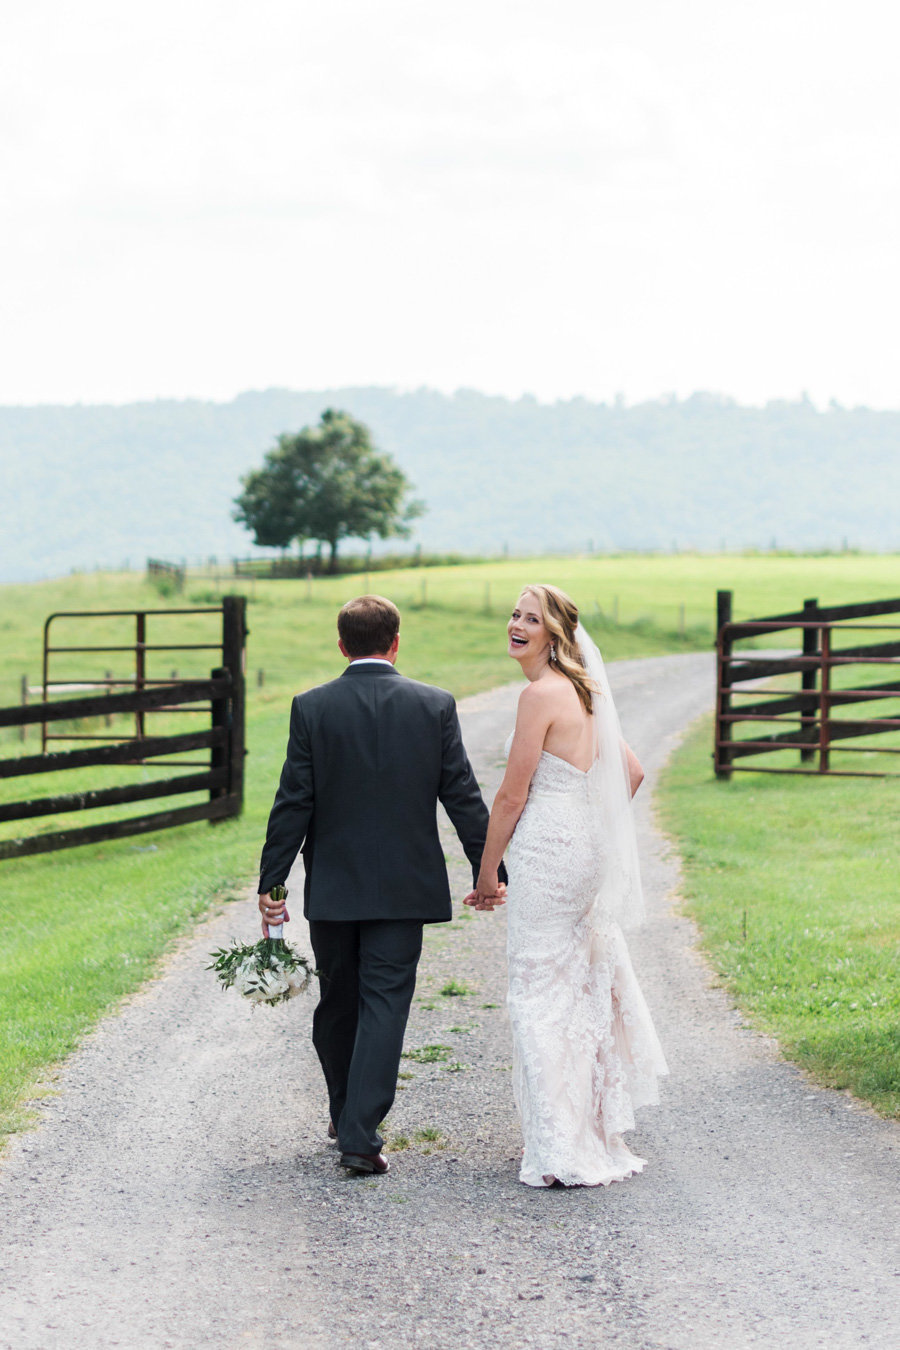 Intimate-Barn-Lewisburg-Wedding-photos-by-carrie-b-joines (5)